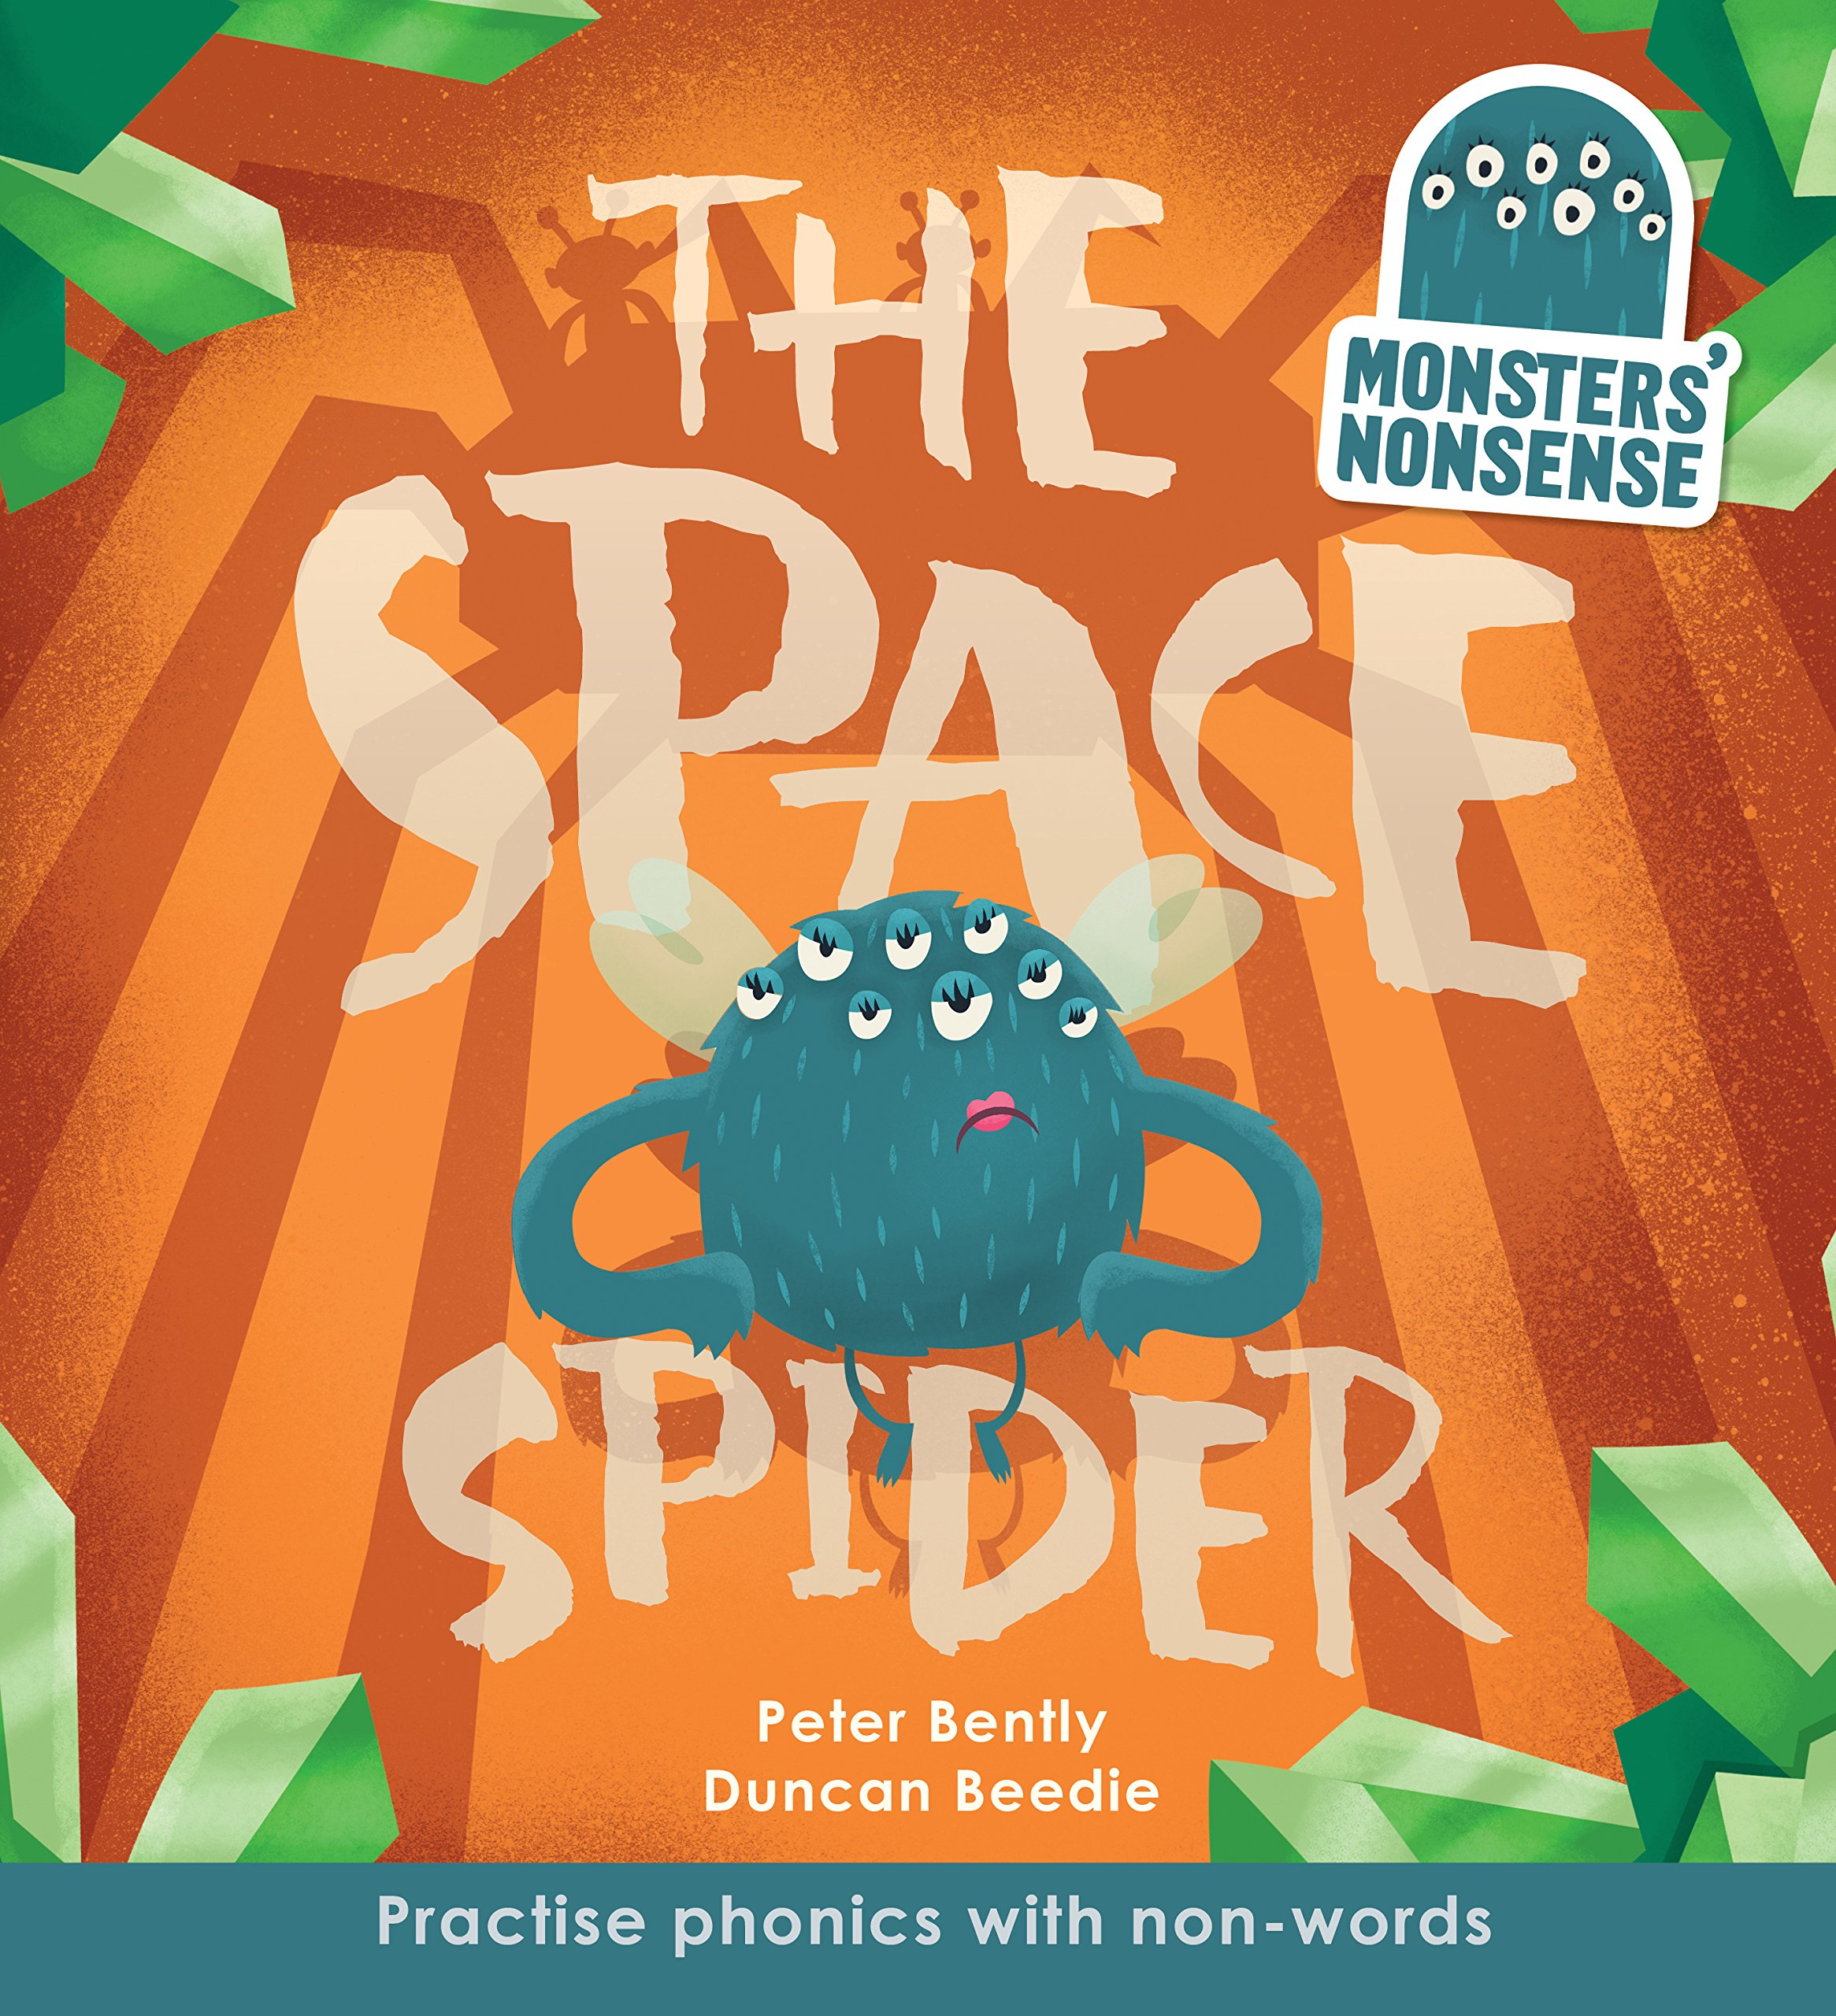 Download Monsters' Nonsense: the Space Spider PDF